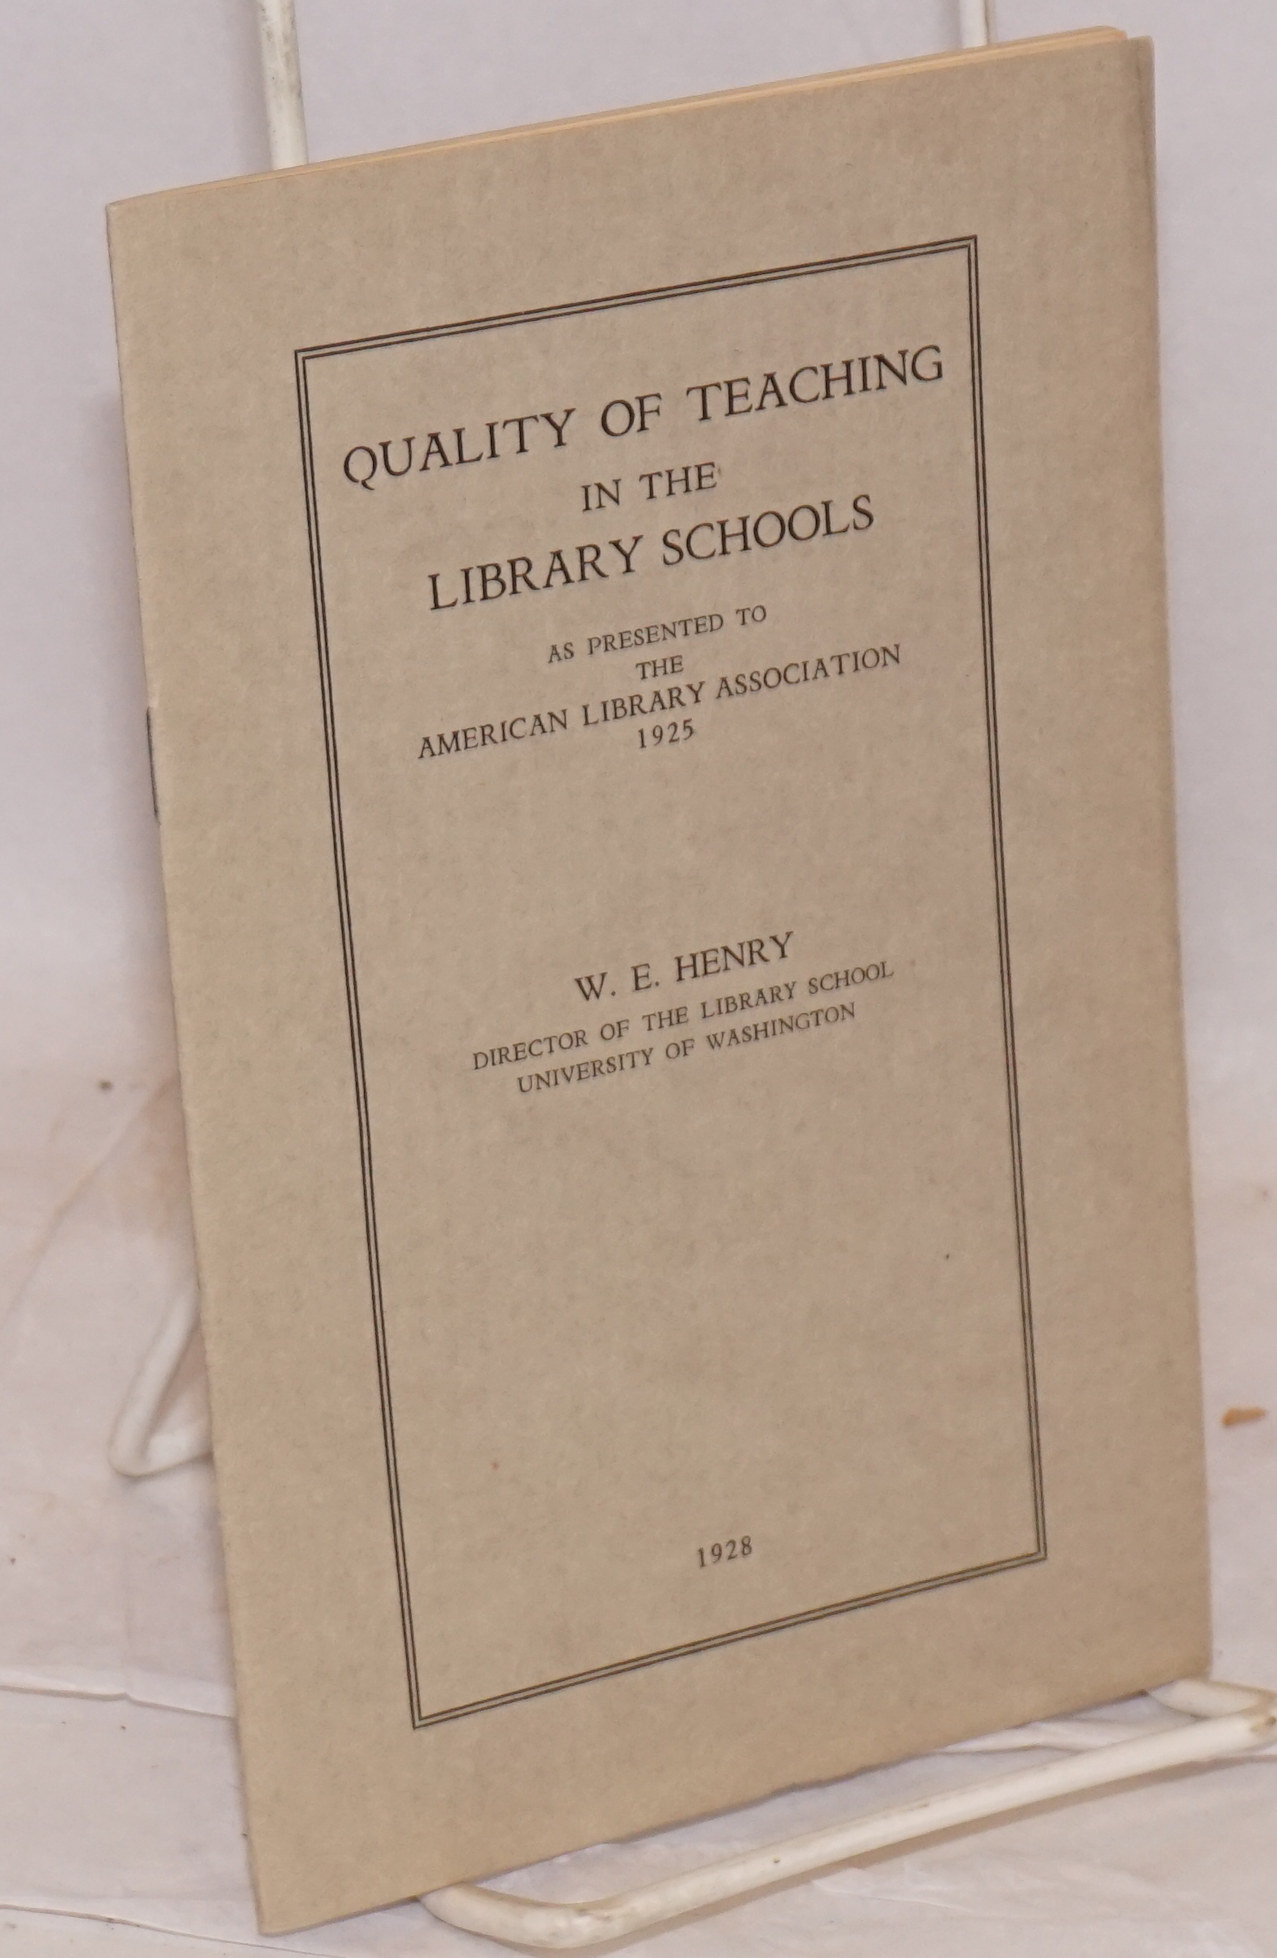 American Library Association Quality Of Teaching In The Library Schools As Presented To The American Library Association 1925 By William E Henry Director Of The Library School